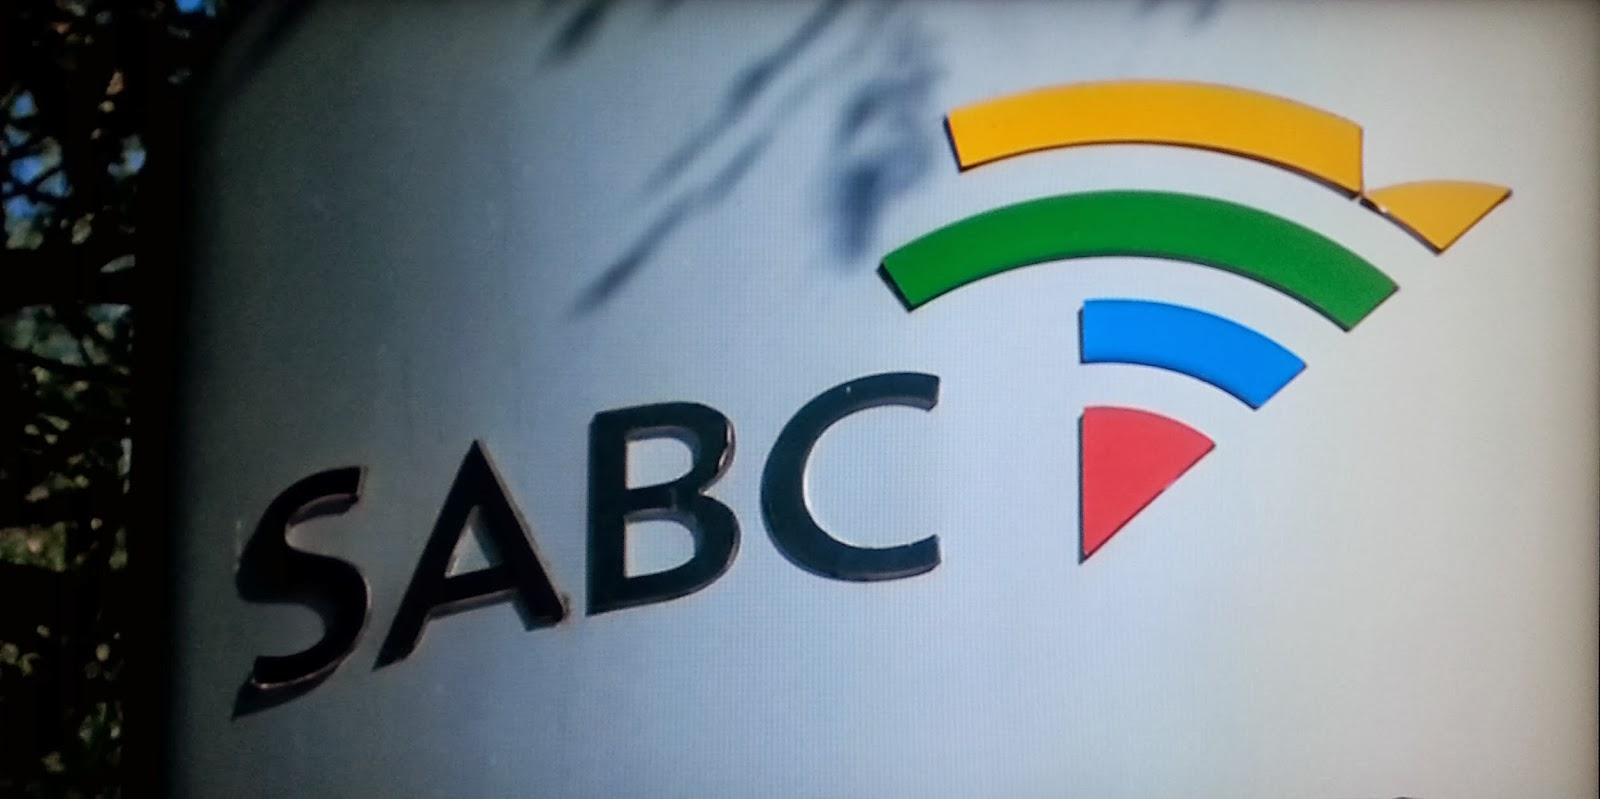 SABC has no money to pay legal fees owed to the DA for Hlaudi cases